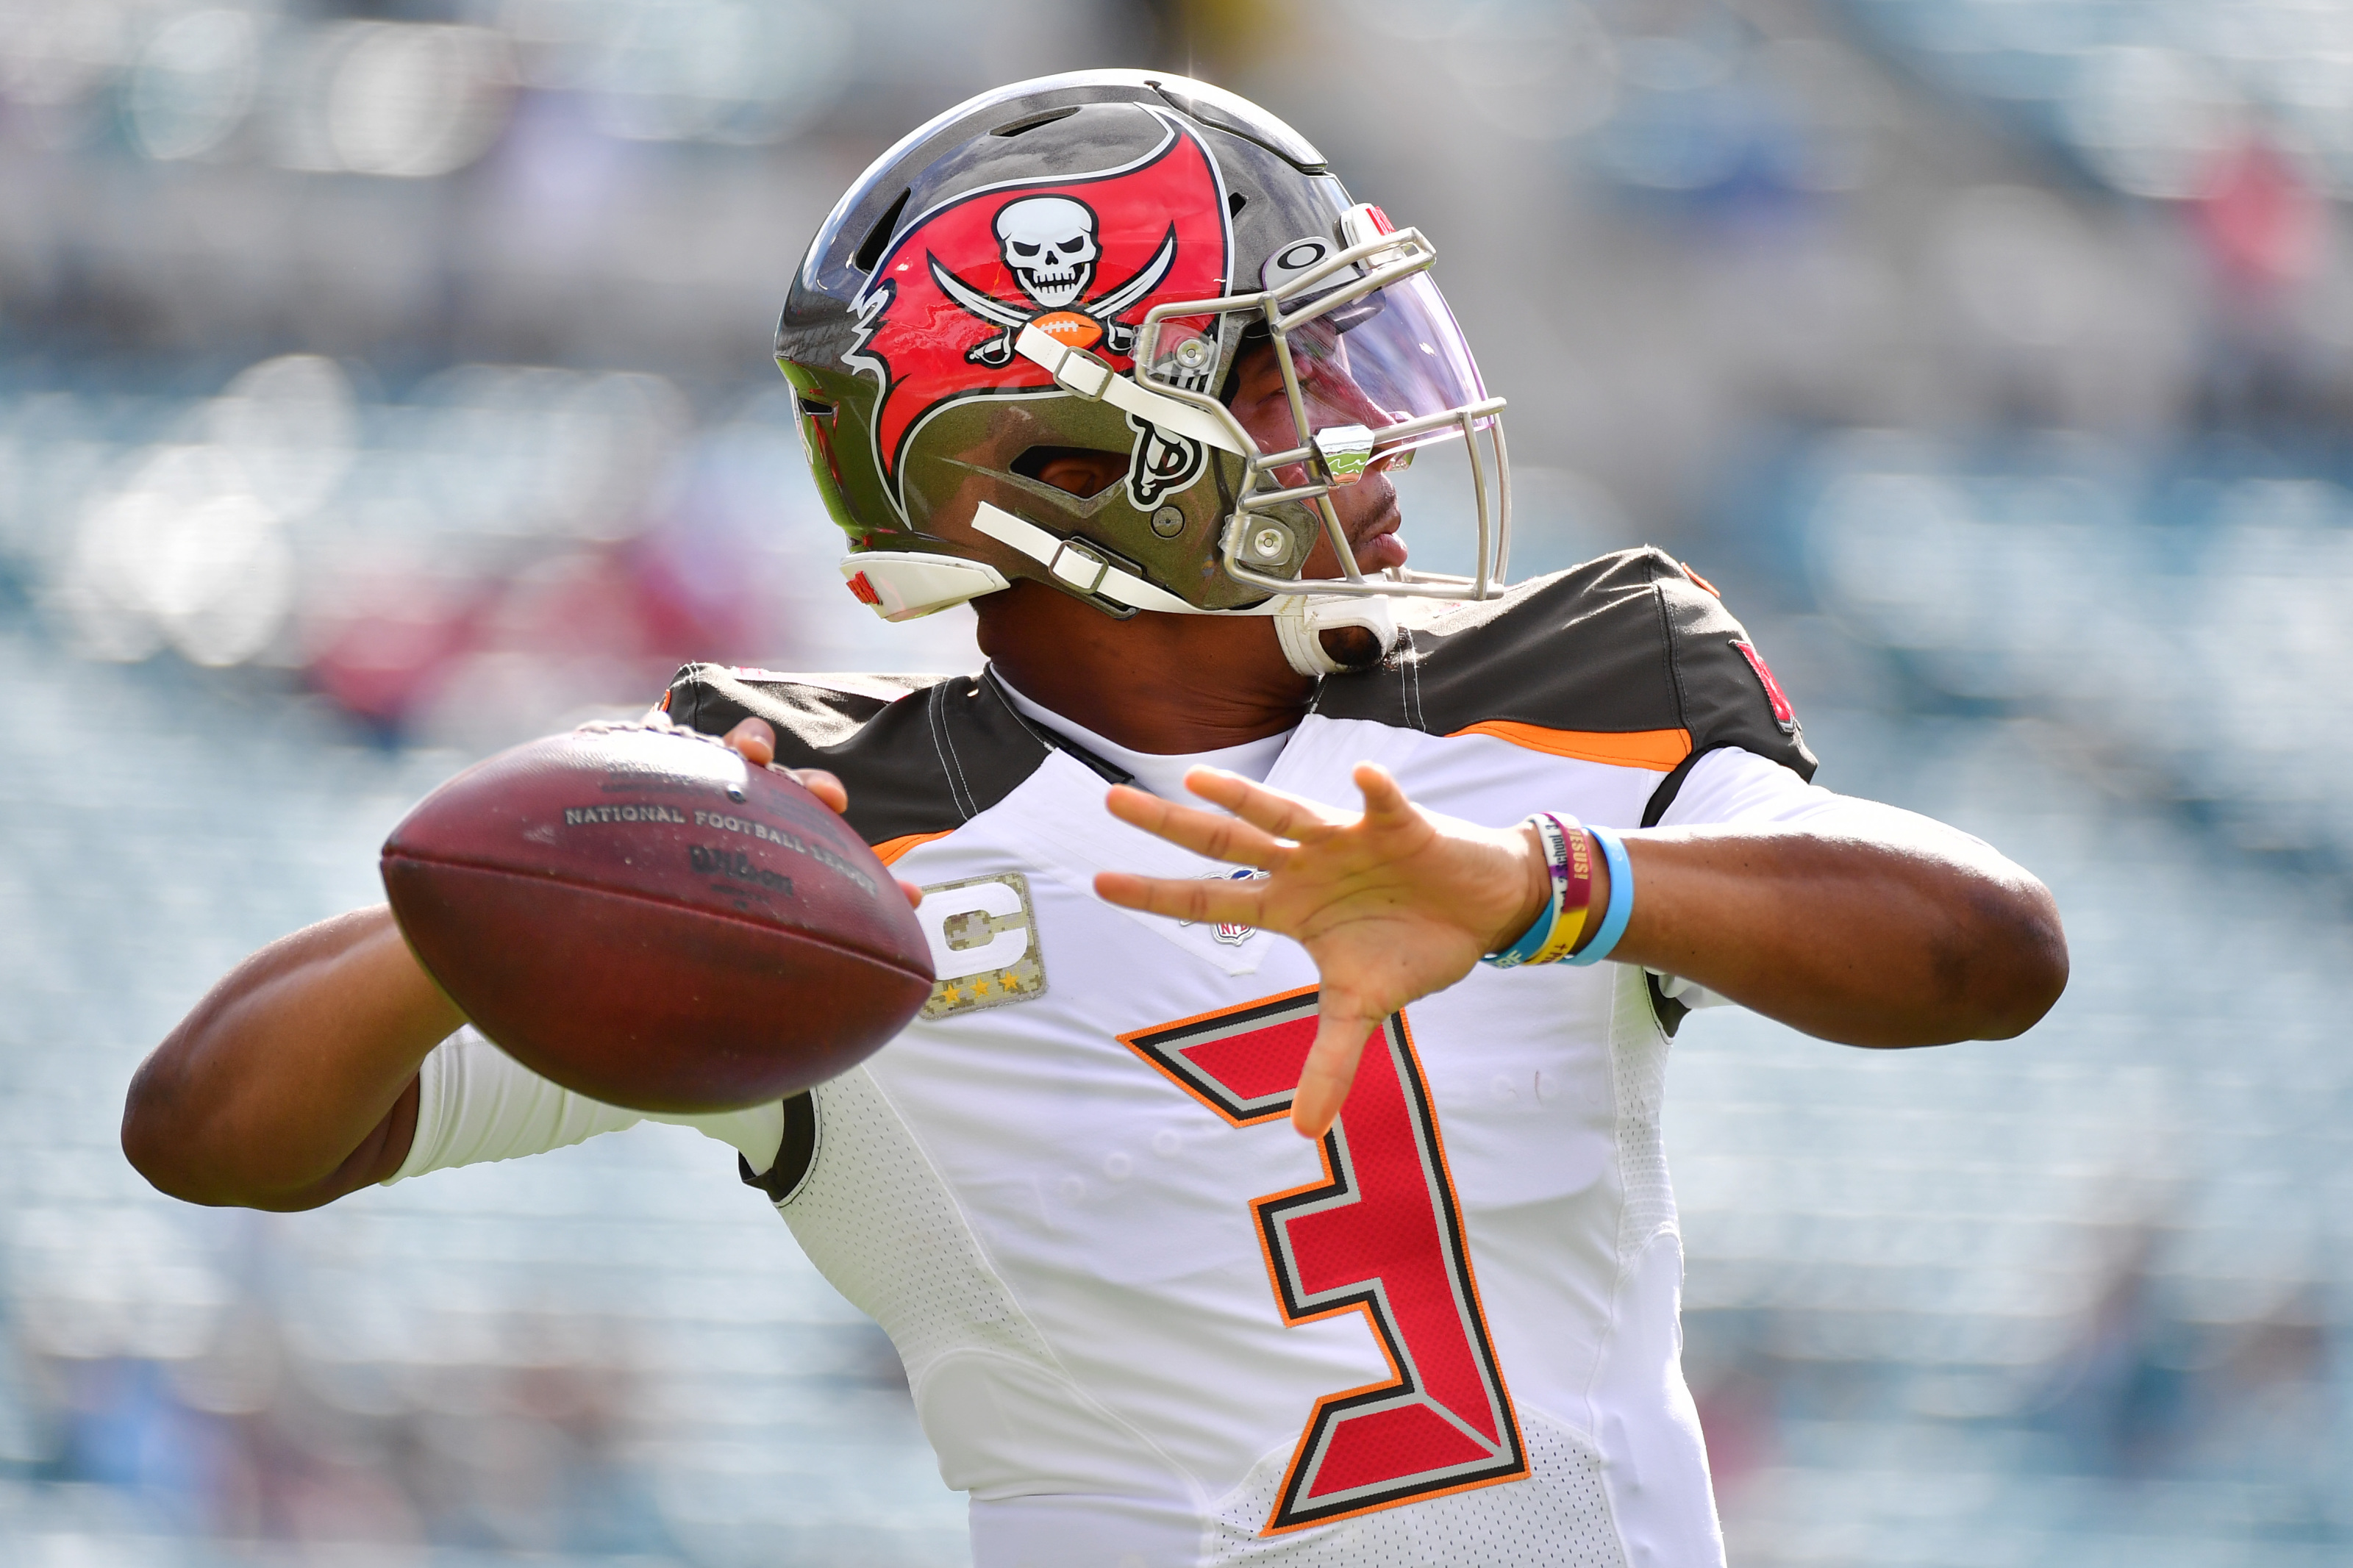 Bill Cowher thinks Jameis Winston could be a 'great fit' for Steelers